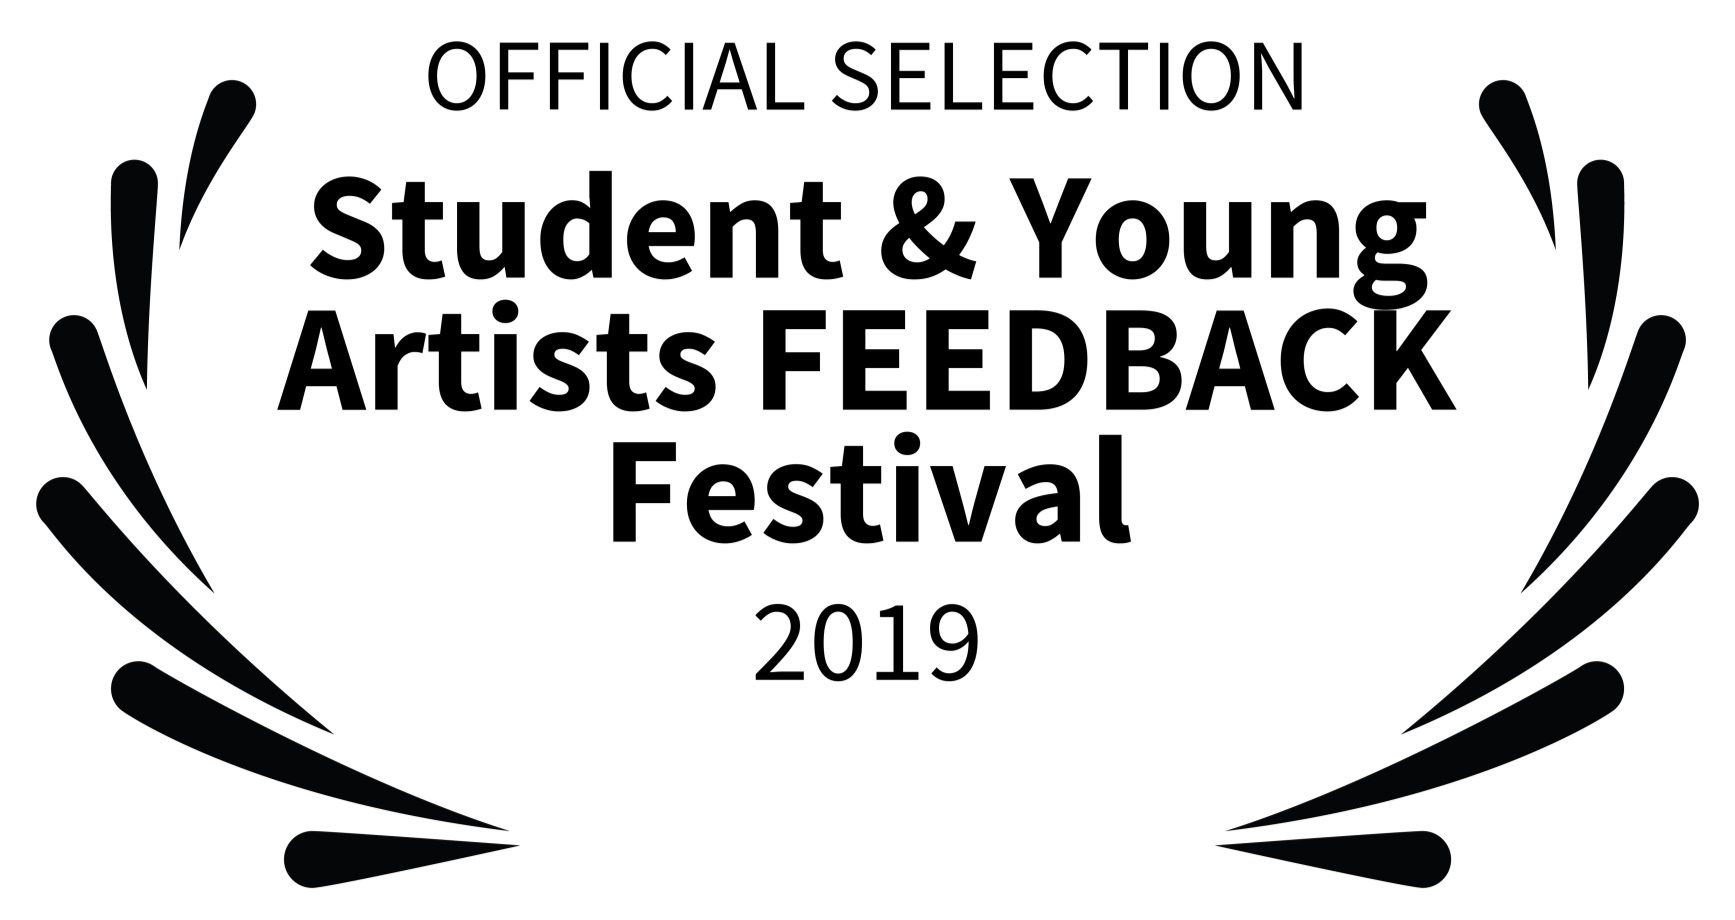 OFFICIAL+SELECTION+-+Student++Young+Artists+FEEDBACK+Festival+-+2019.jpg